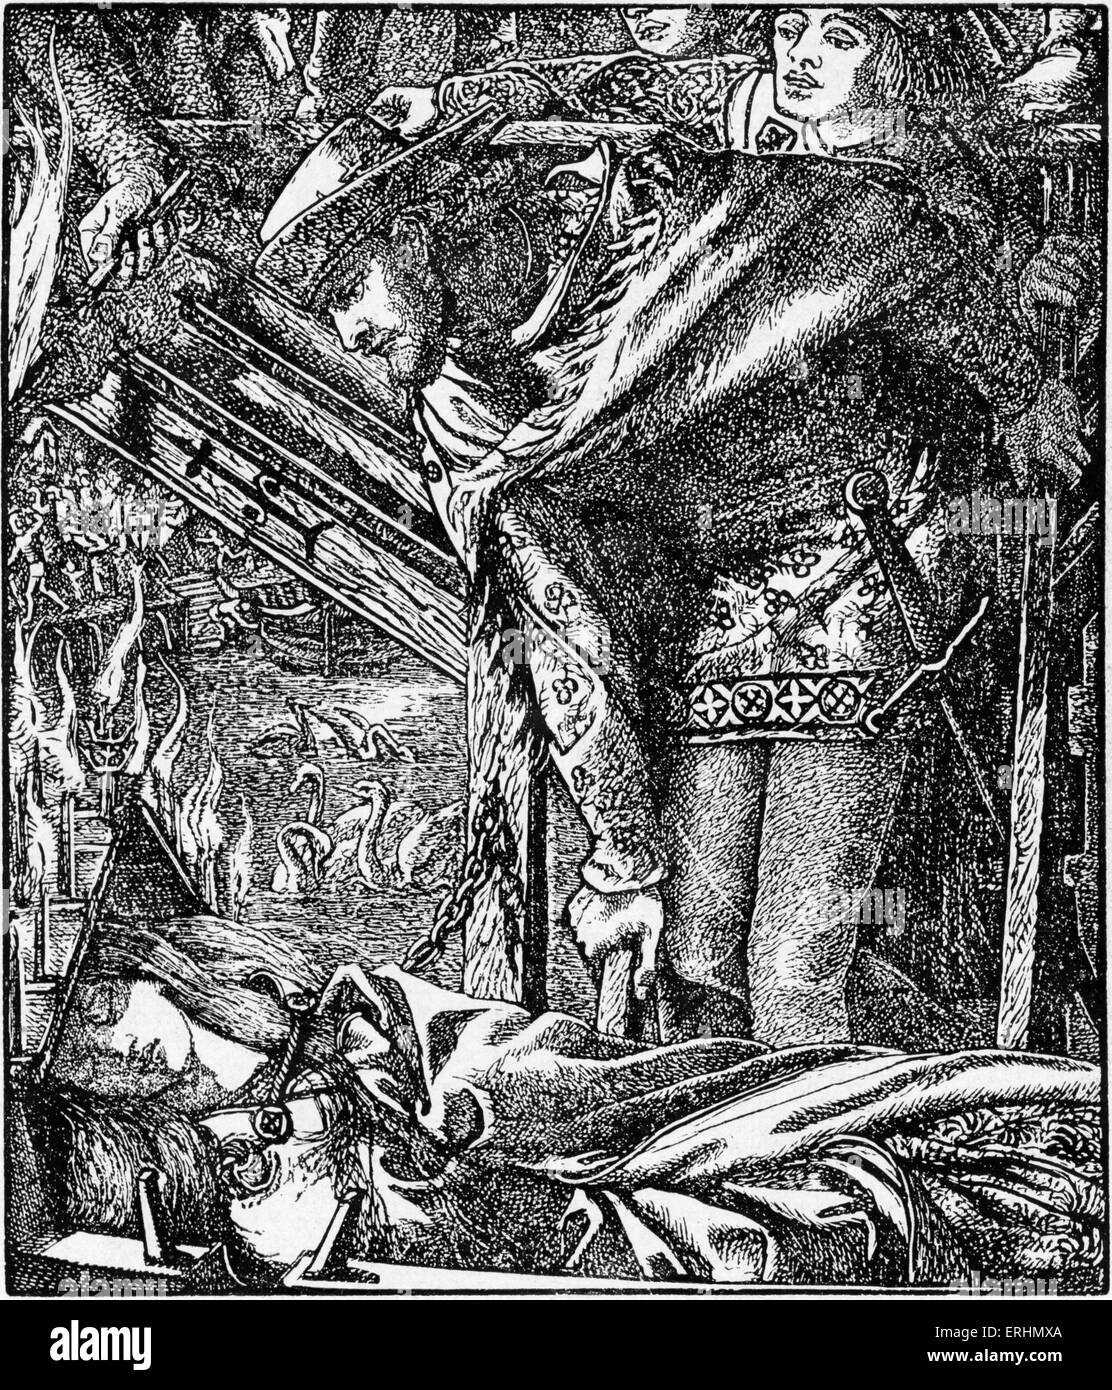 Dante Gabriel Rossetti 's illustration for 'The Lady of Shalott' Engraved by Dalziel for the 1857 Moxon - Stock Image